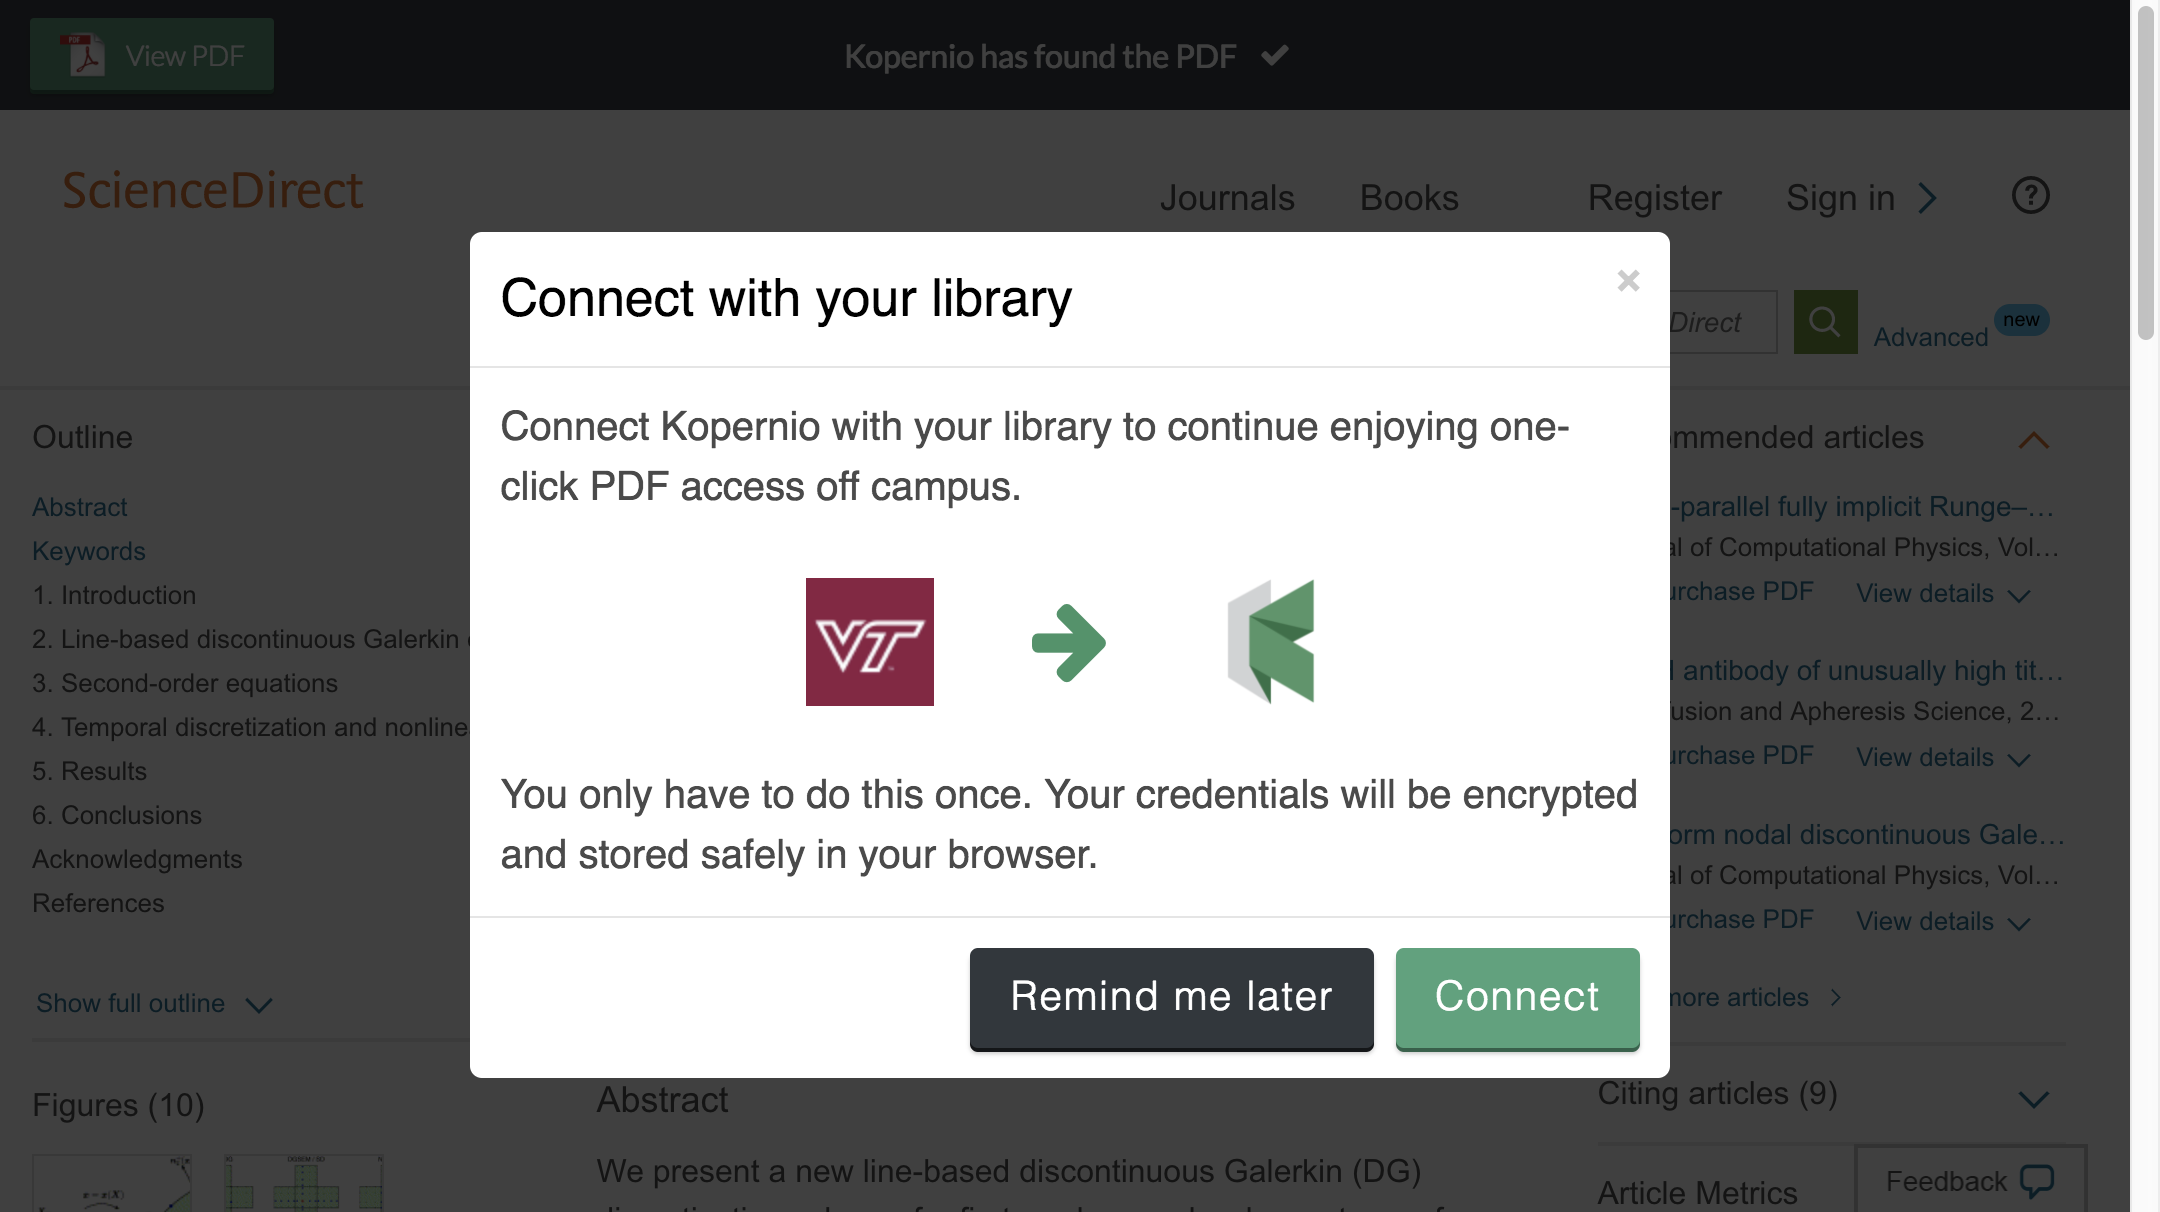 Connect to library prompt for off-campus access to Virginia Tech e-resources.